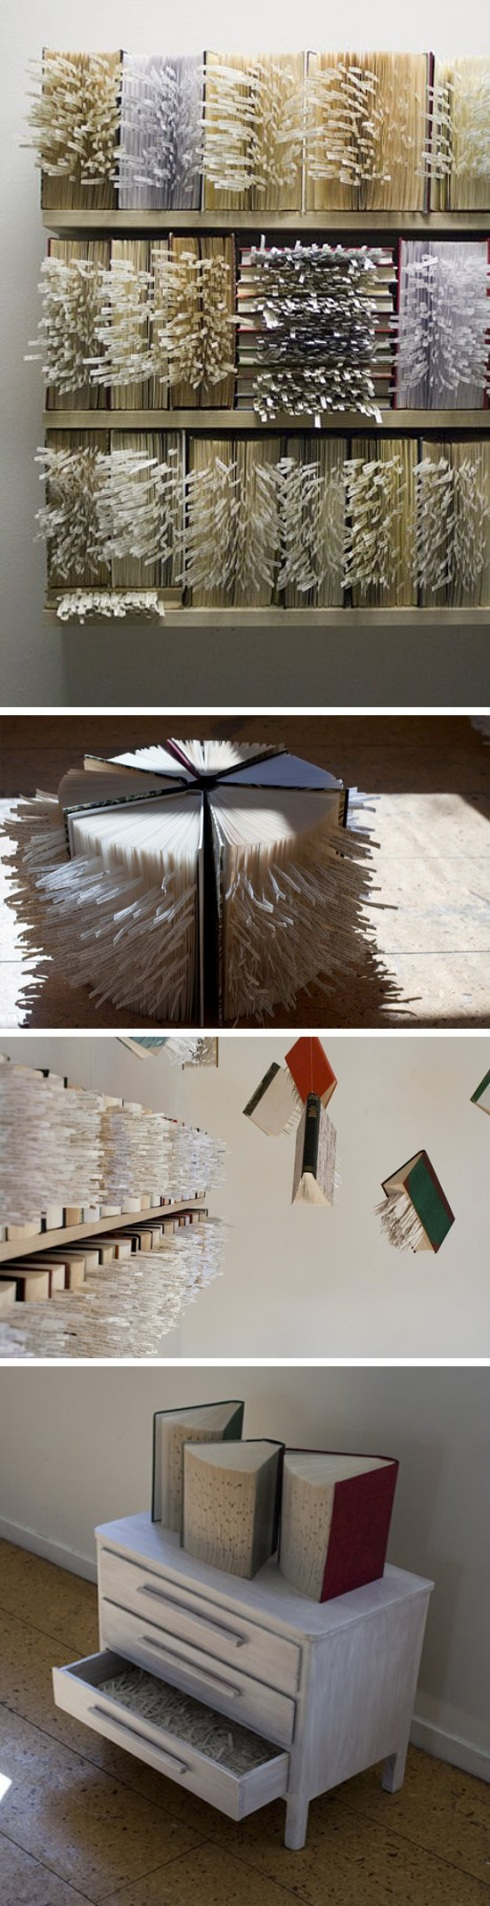 Book art, text, collage, contemporary sculpture, Iceland, Reykyavik, Weird Girls project